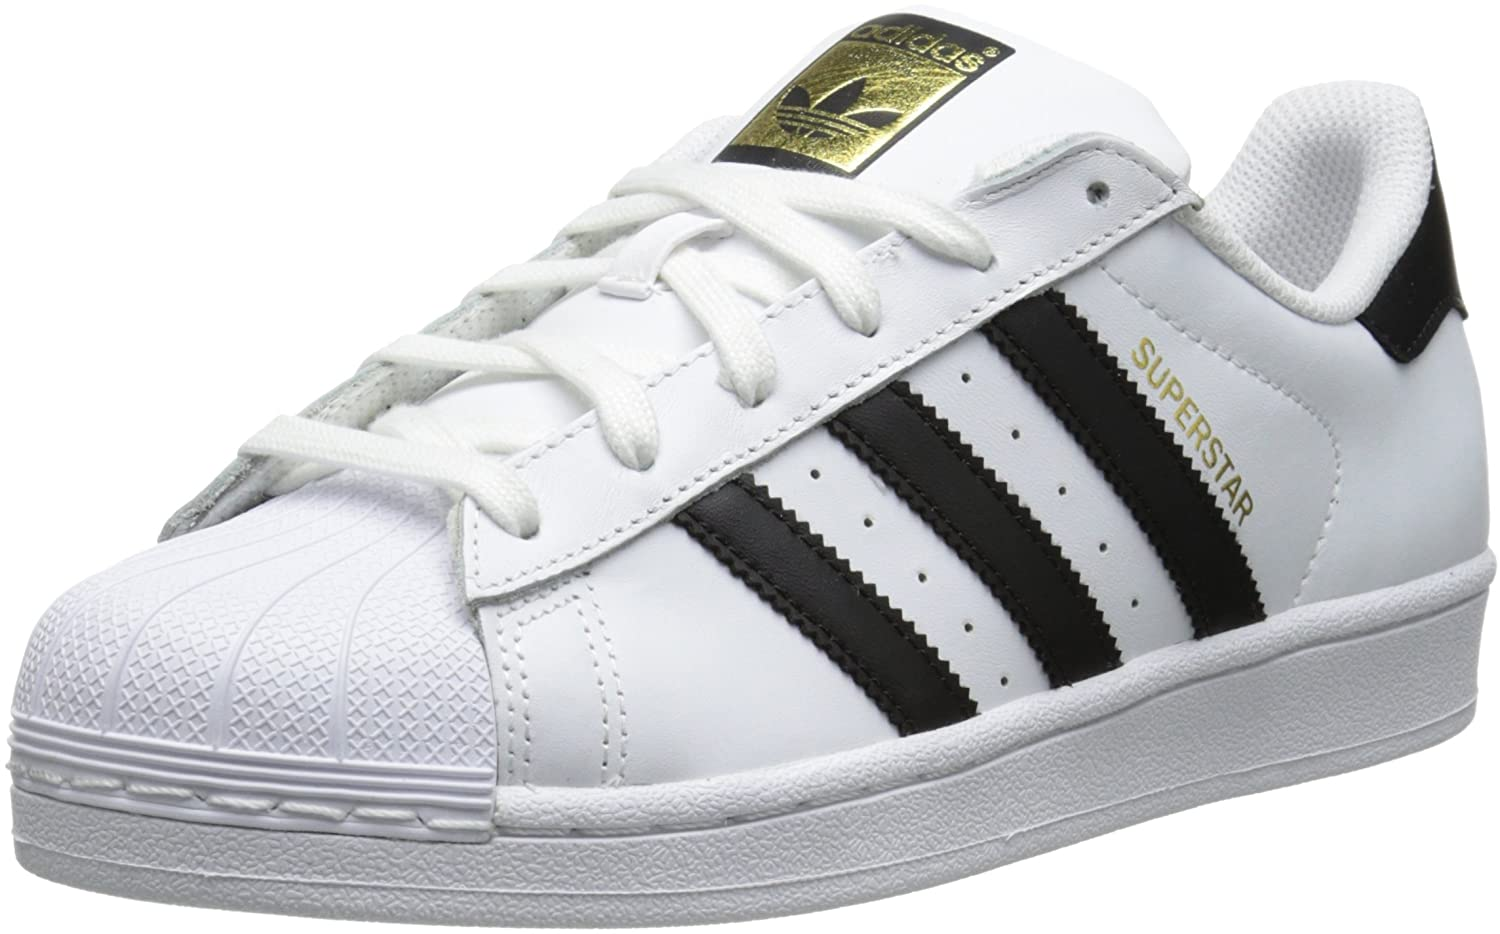 adidas superstar white black stripes